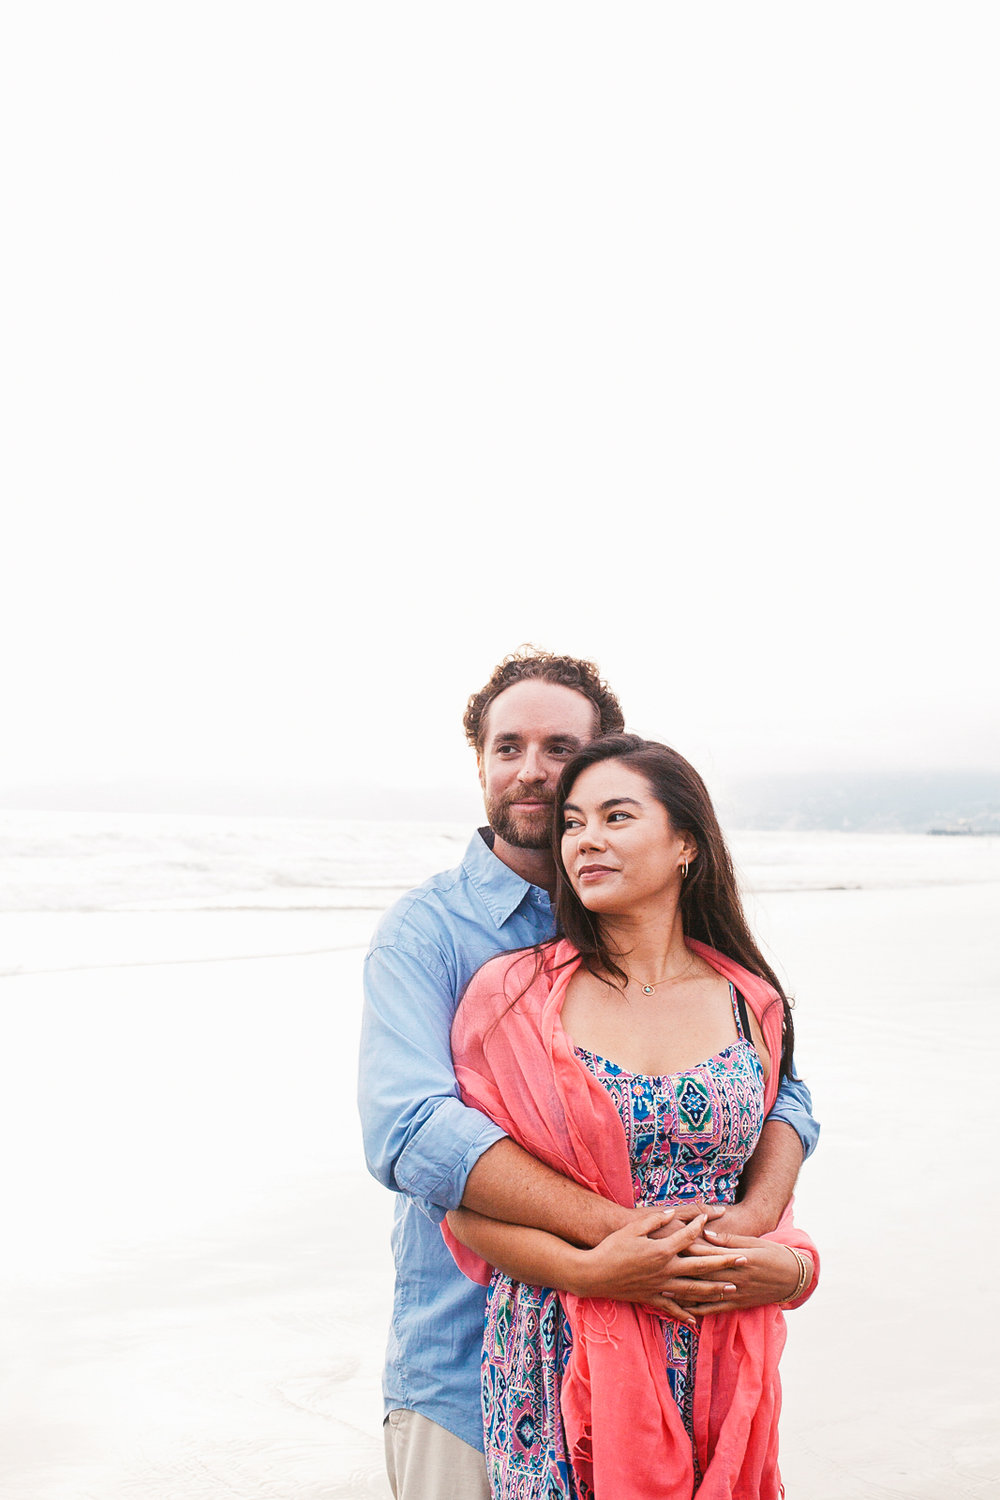 VENICE_BEACH_ENGAGEMENT_PHOTOGRAPHY_EBONY_SIOVHAN_BOKEH_PHOTOGRAPHY_-4.jpg